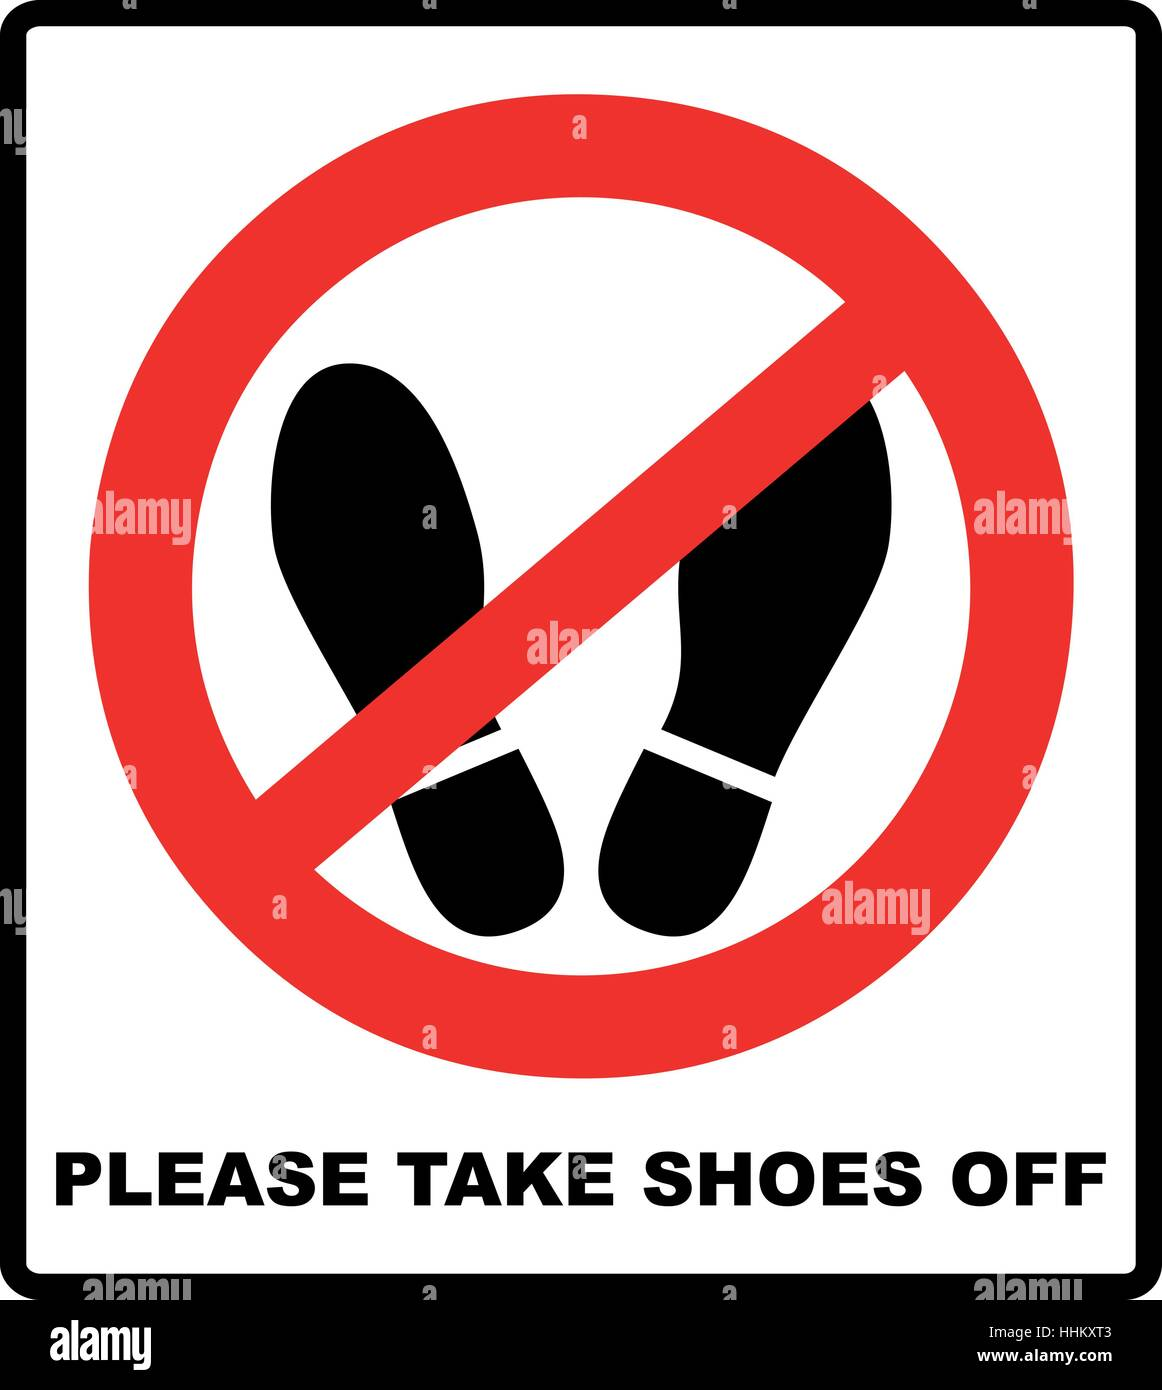 9809982dce19b1 Please take shoes off. Do not step here please sign vector illustration.  Red prohibition